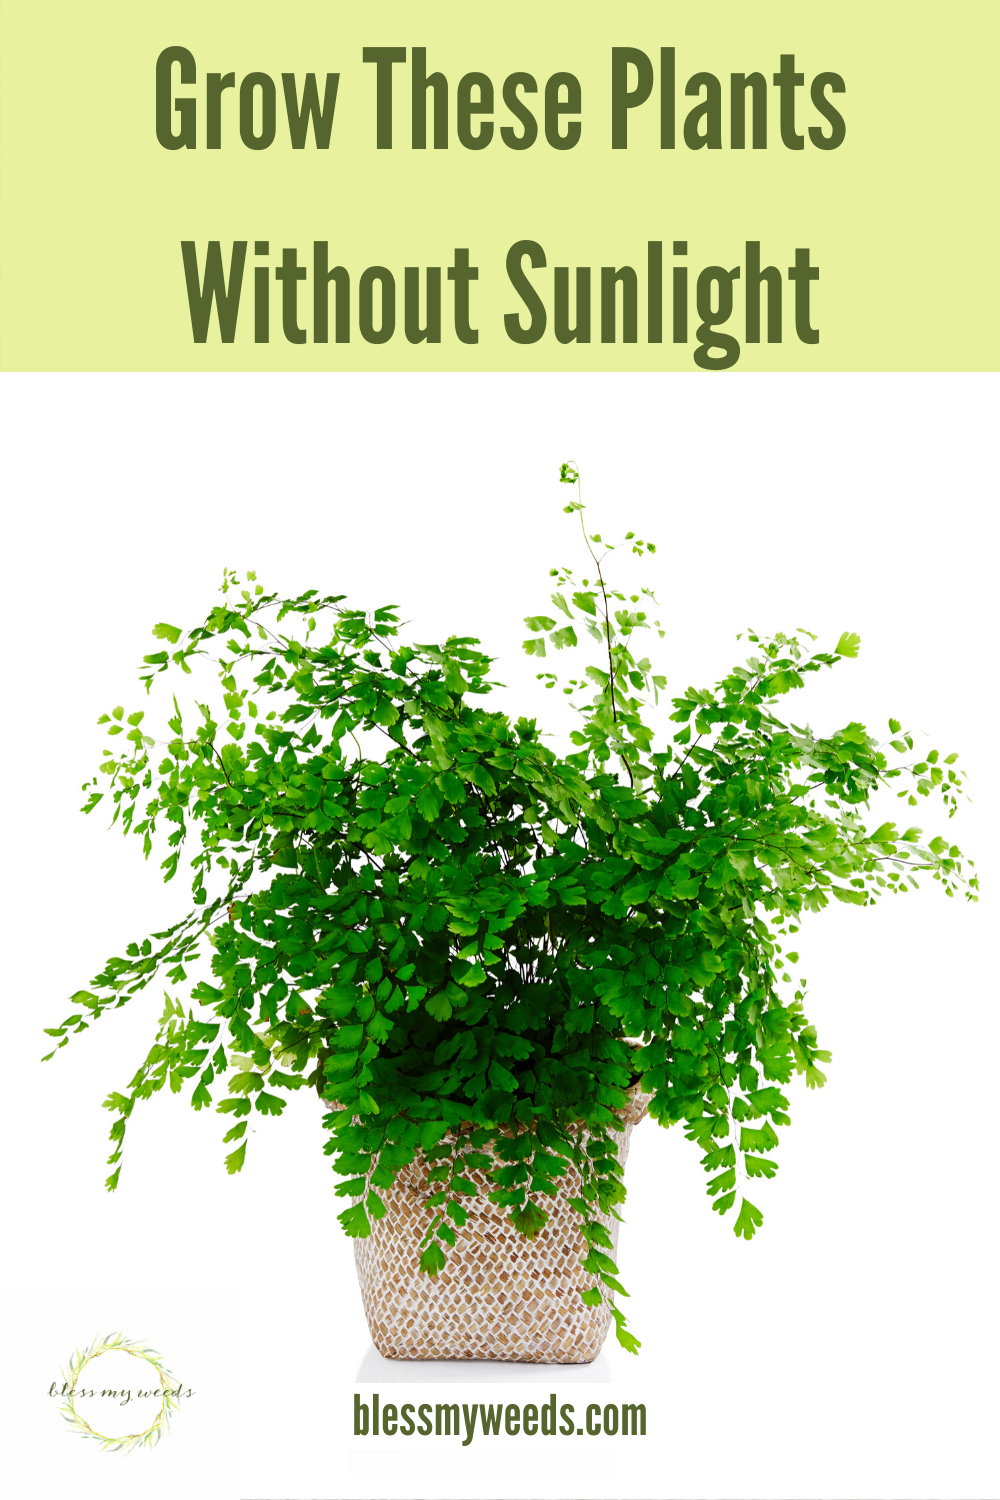 If you are like most people, you stick your houseplants near a window to capture the sunlight. But, many plants need filtered light so that idea doesn't work for all plants. In fact, there are some plants that need very little to no sunlight. What? I am sure you are puzzled! No worries. Keep reading this post for a list of 15 plants that can do this. Now the opportunities for plants are endless. Imagine all the places you could put them. #plants #indoorplants #houseplantsforlowlight #plantsthatneedlowsunlight